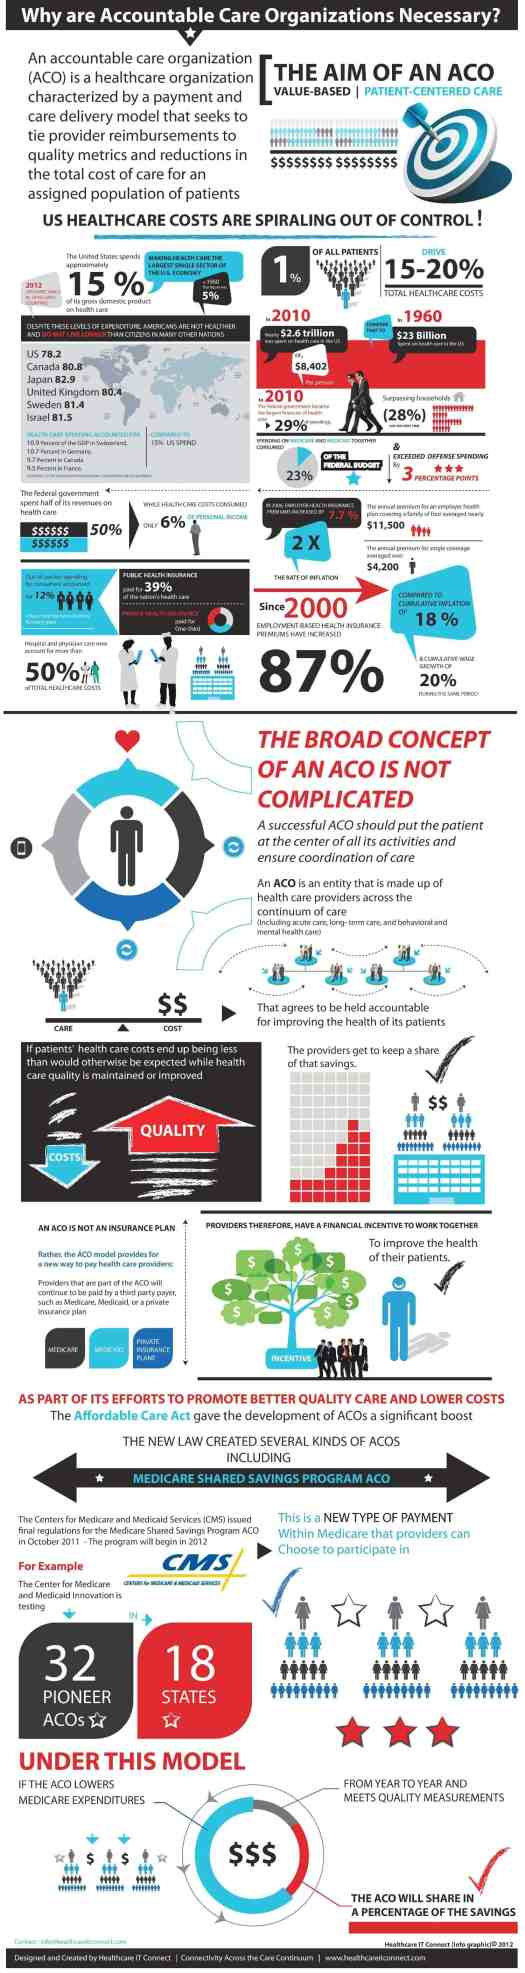 ACO What Is The Aim of An Accountable Care Organization? Infographic